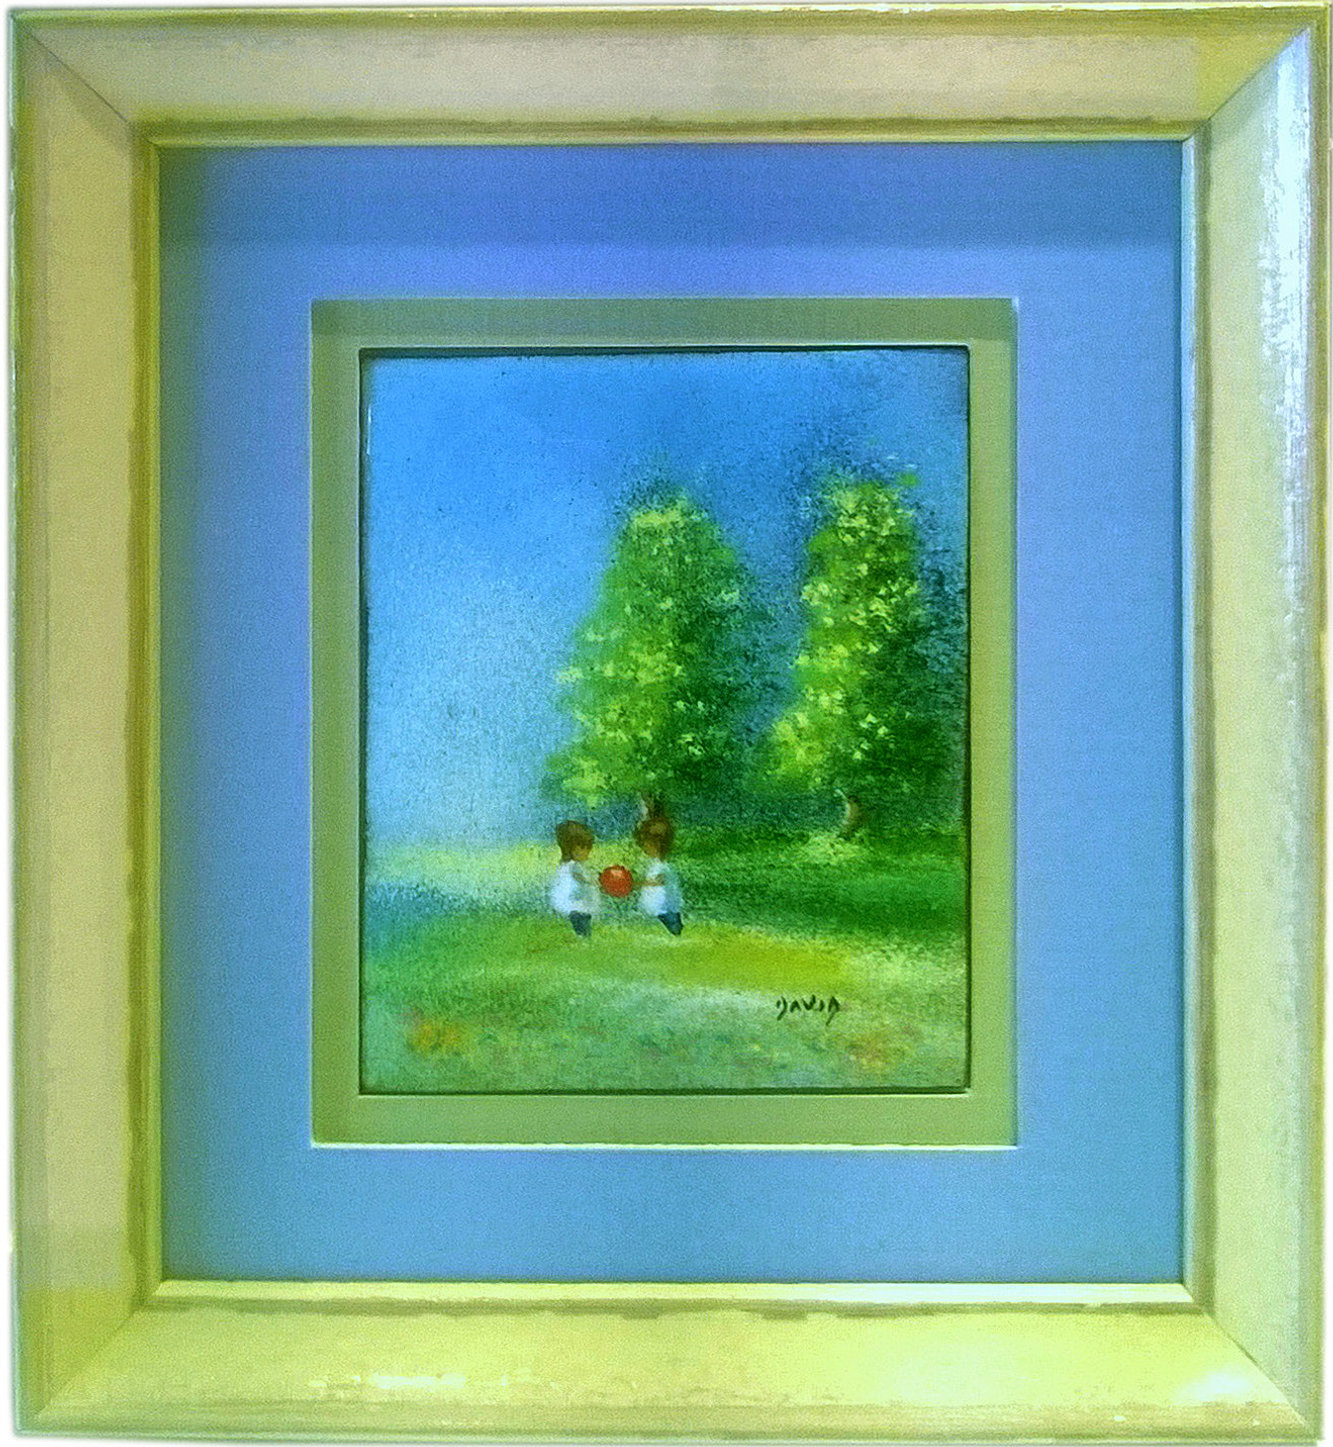 The village frame shop local artist gallery conservation framing mini painting custom picture frame jeuxipadfo Images